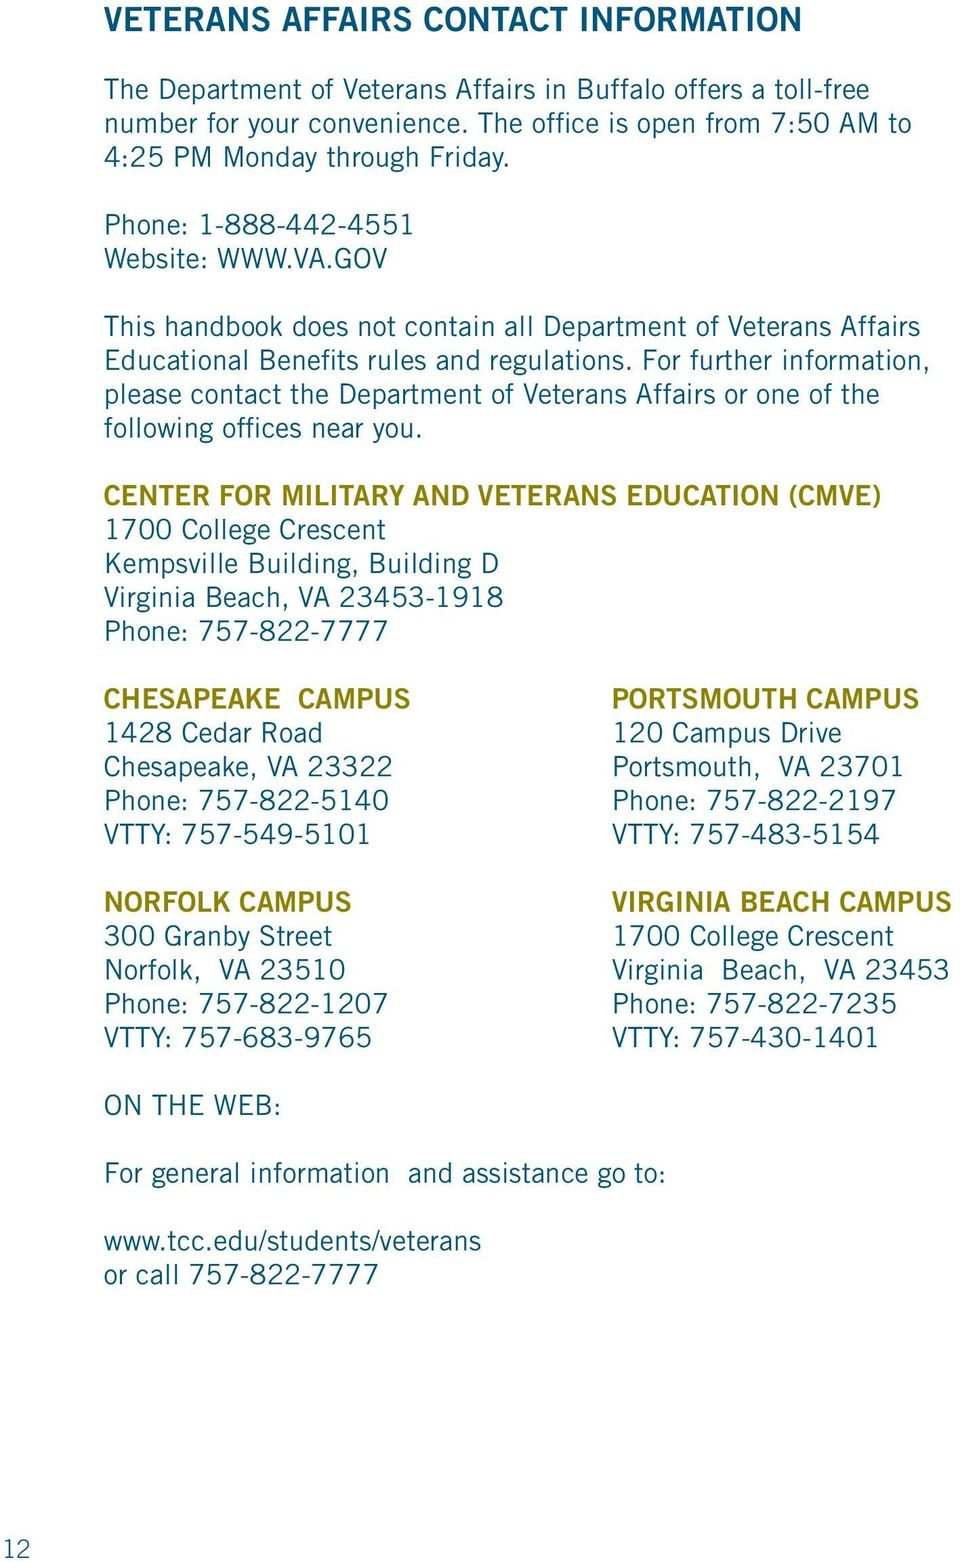 For further information, please contact the Department of Veterans Affairs or one of the following offices near you.